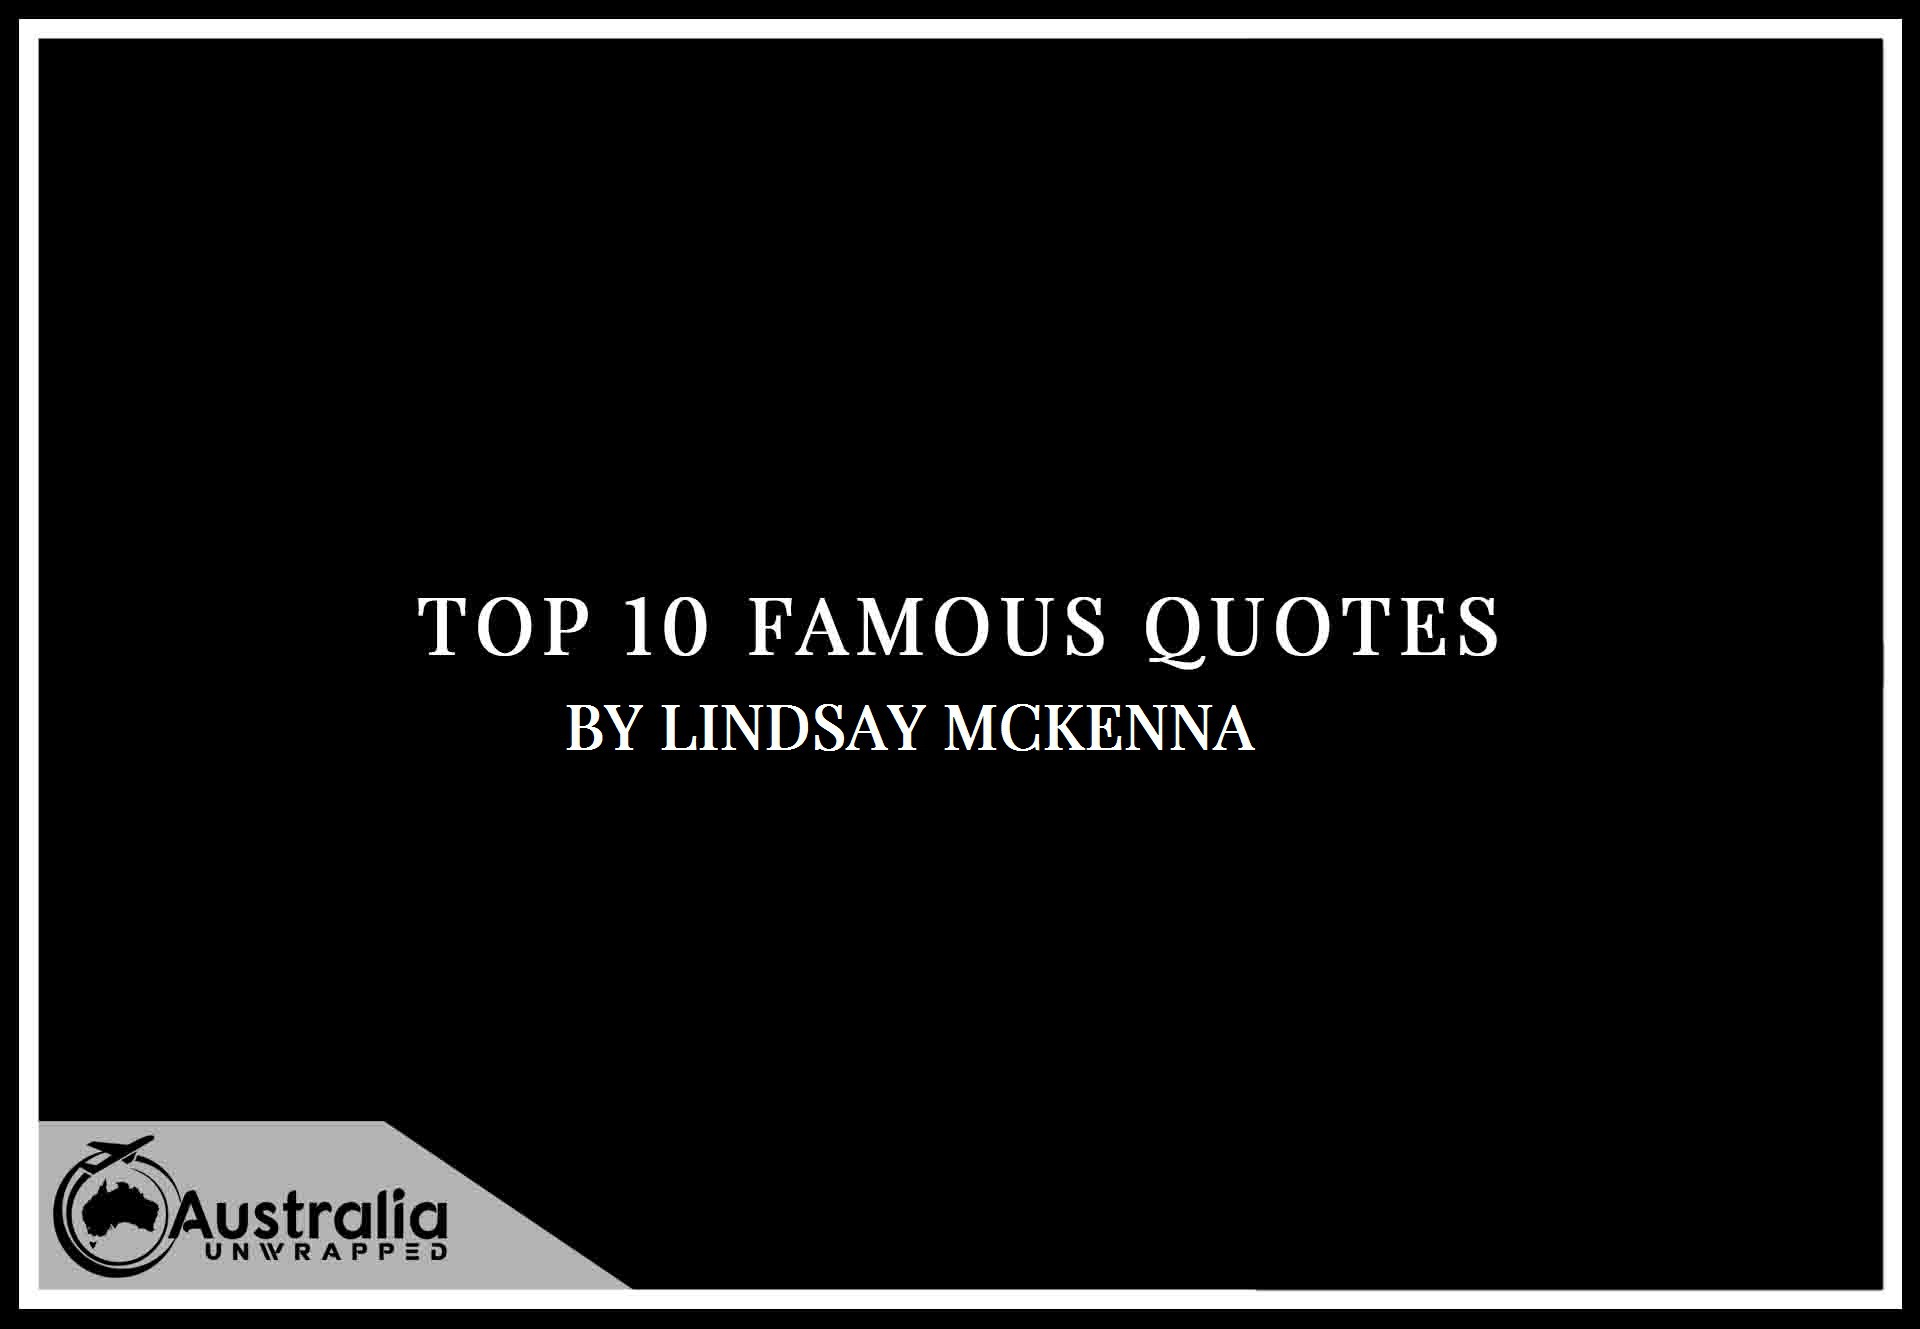 Lindsay McKenna's Top 10 Popular and Famous Quotes